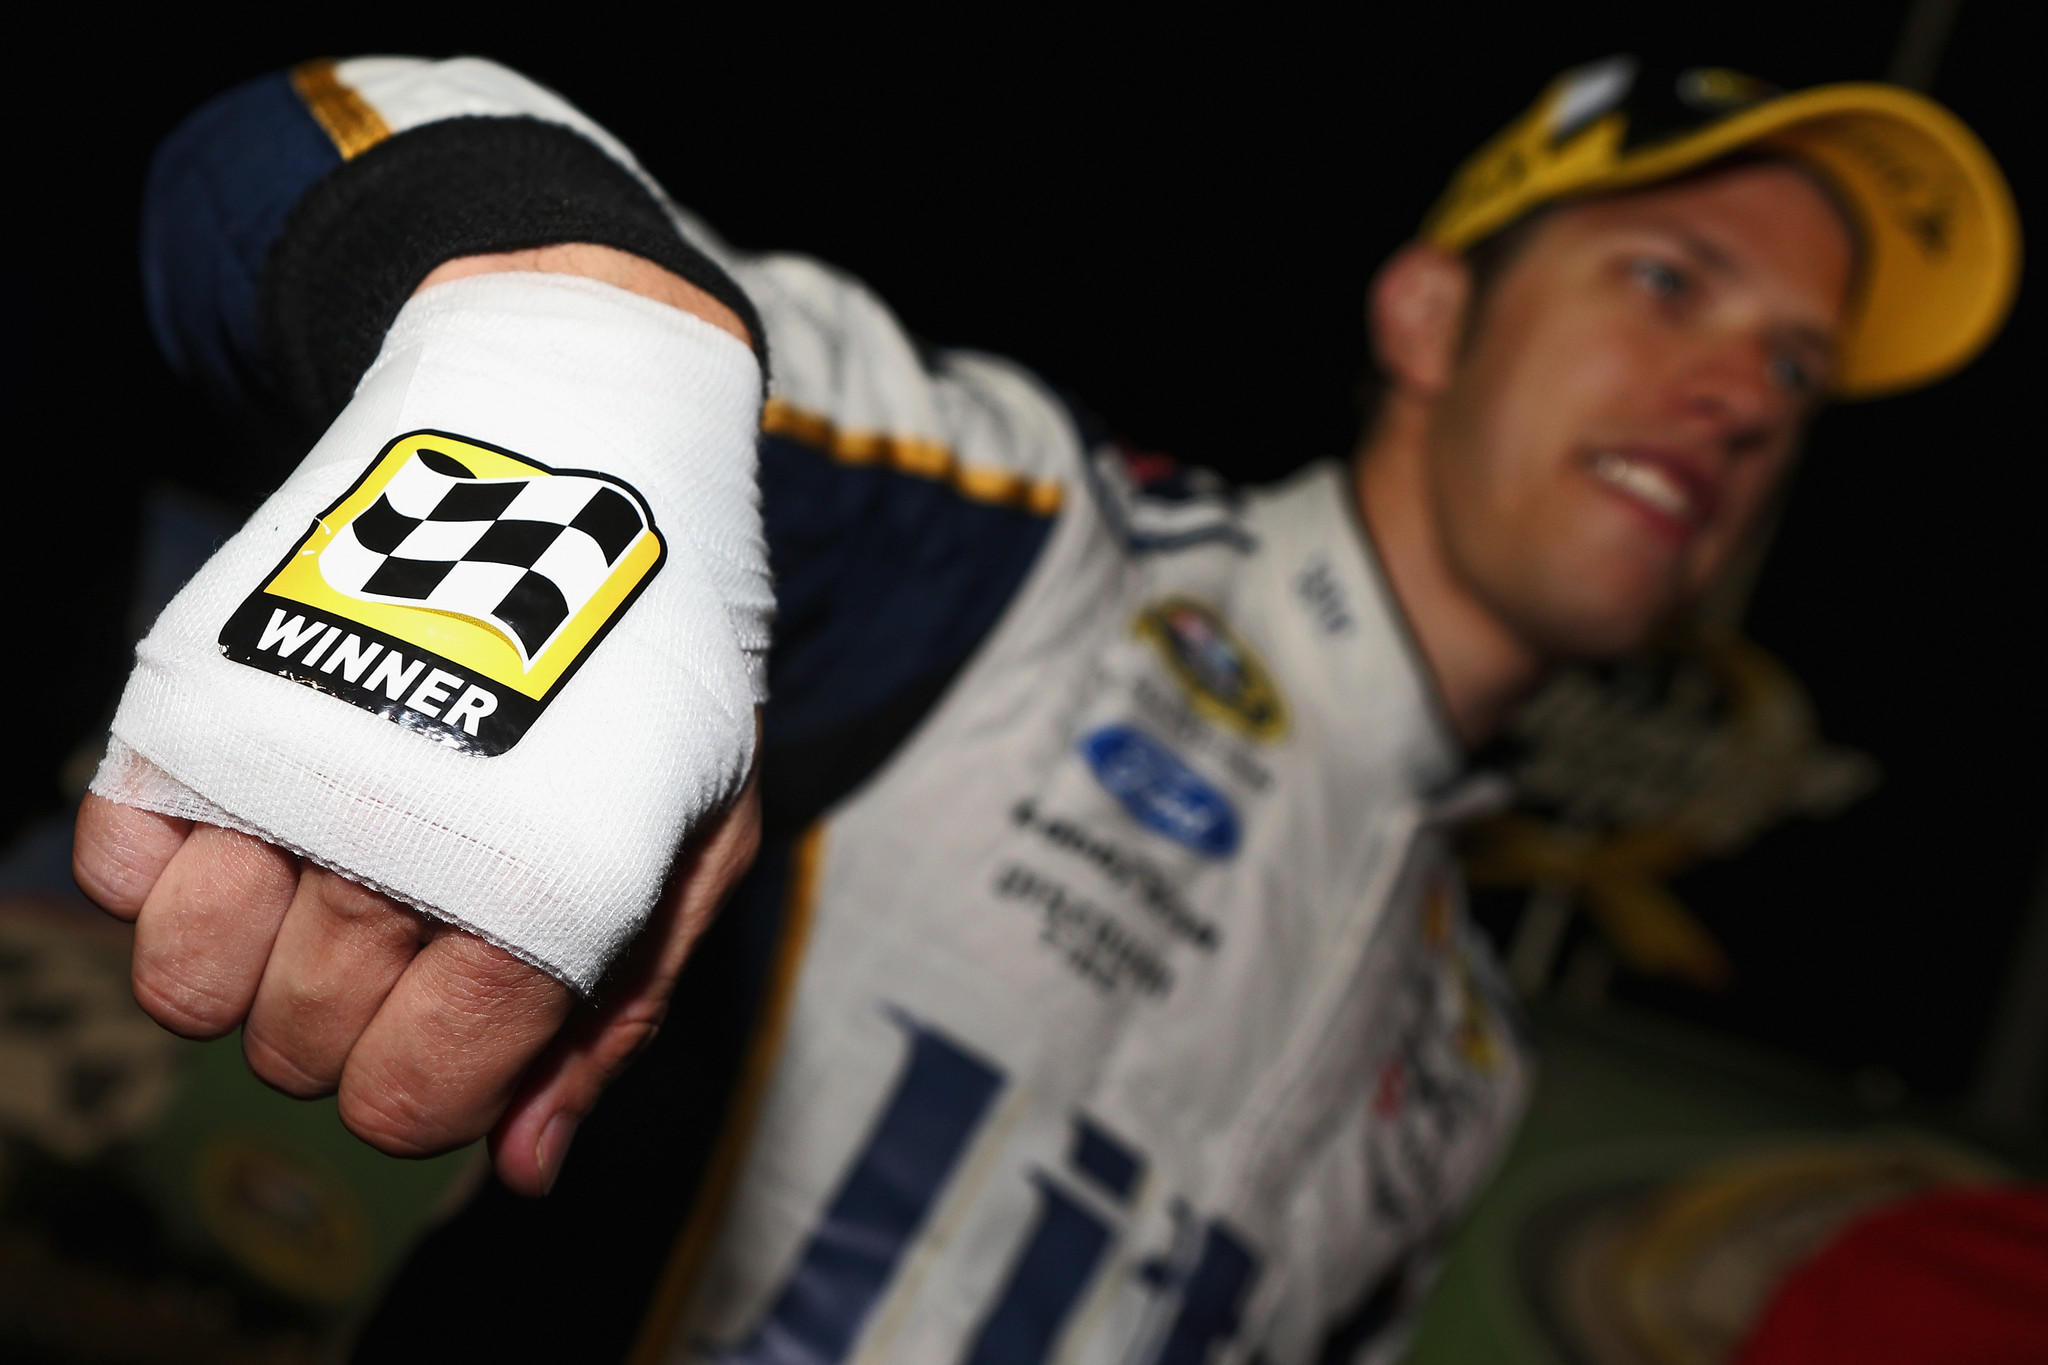 Brad Keselowski, driver of the #2 Miller Lite Ford, shows his bandaged hand after cutting himself while celebrating with champagne in Victory Lane after winning the NASCAR Sprint Cup Series Quaker State 400 presented by Advance Auto Parts at Kentucky Speedway.